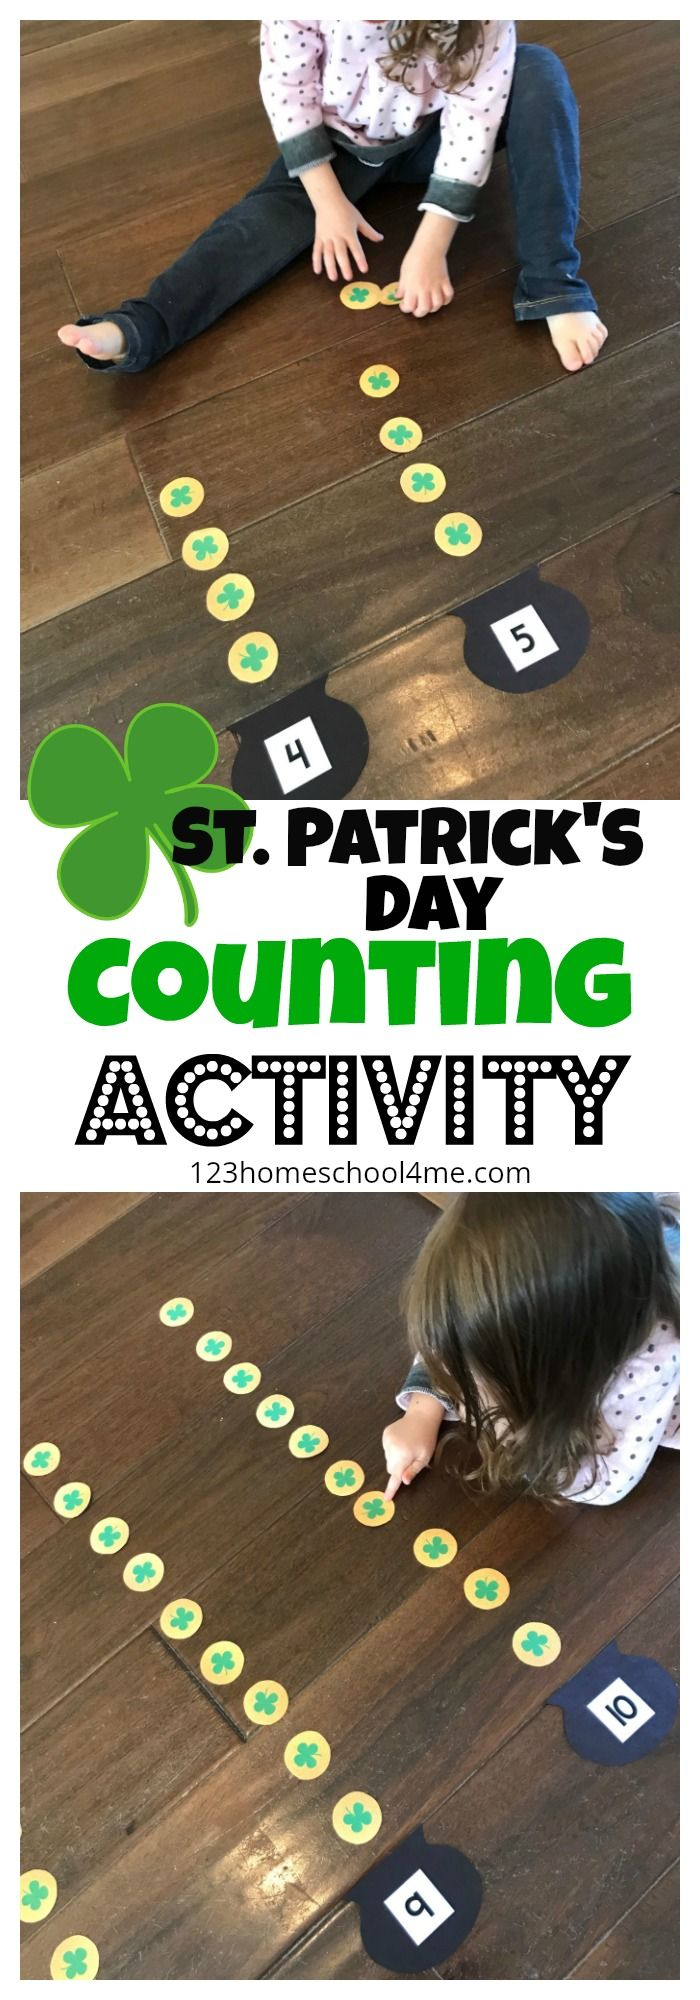 St. Patrick's Day is right around the corner and there's no better way to get kids excited about a holiday then a fun activity! This Amazing St. Patrick's Day Counting